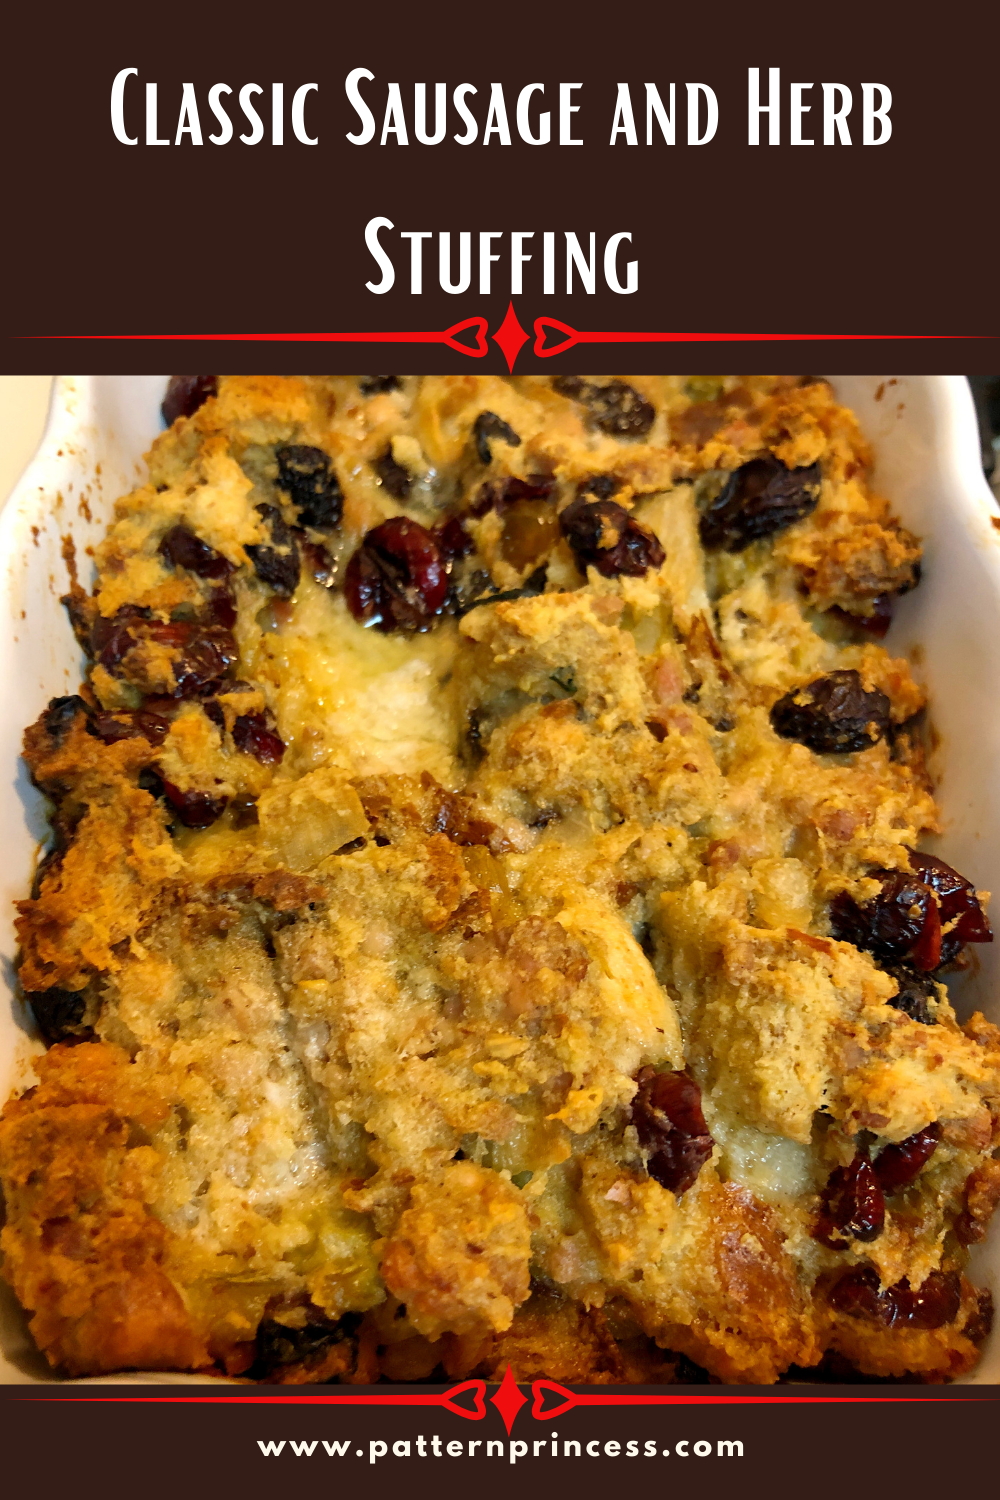 Classic Sausage and Herb Stuffing